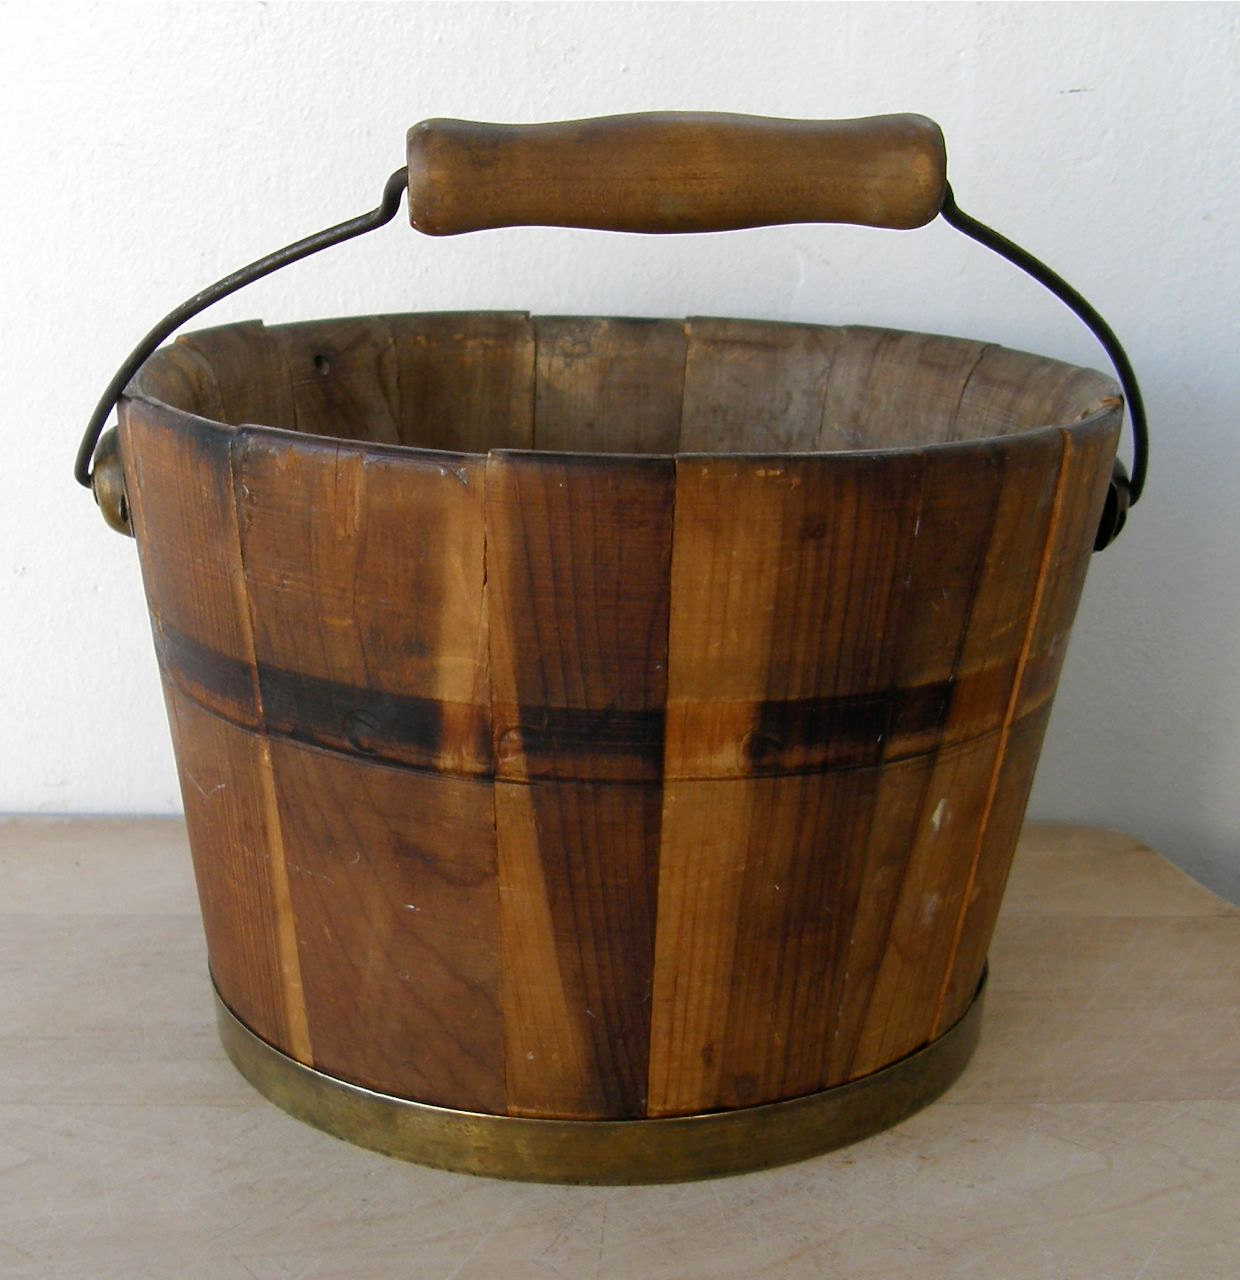 Old Wooden Buckets 1240x1280